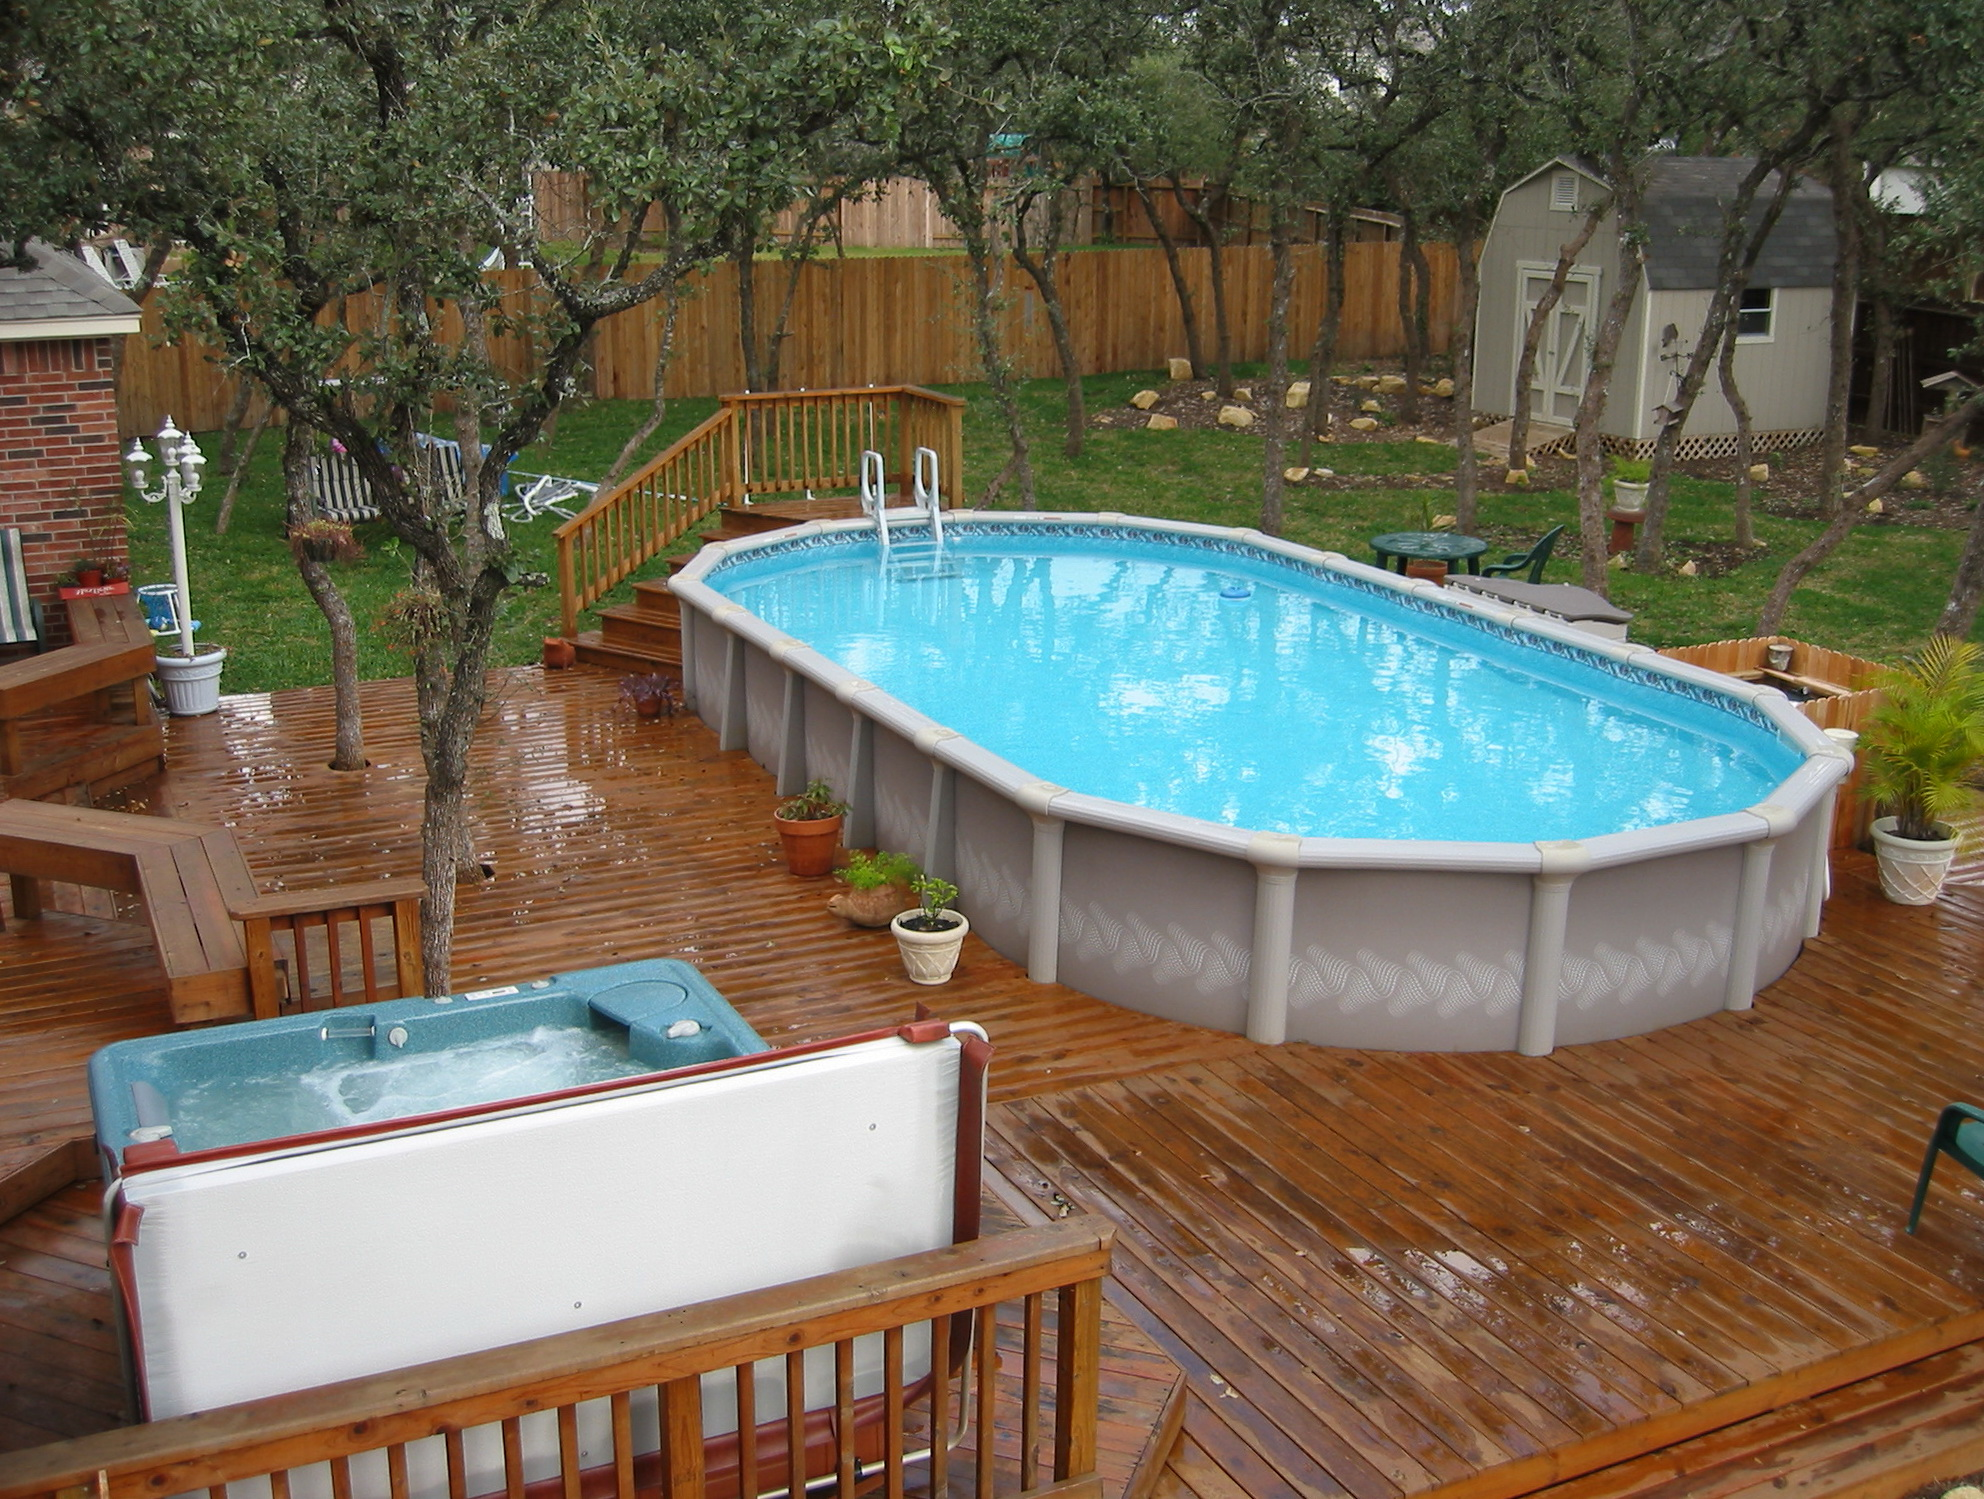 Above ground pool decks for small yards home design ideas for Swimming pools for small yards